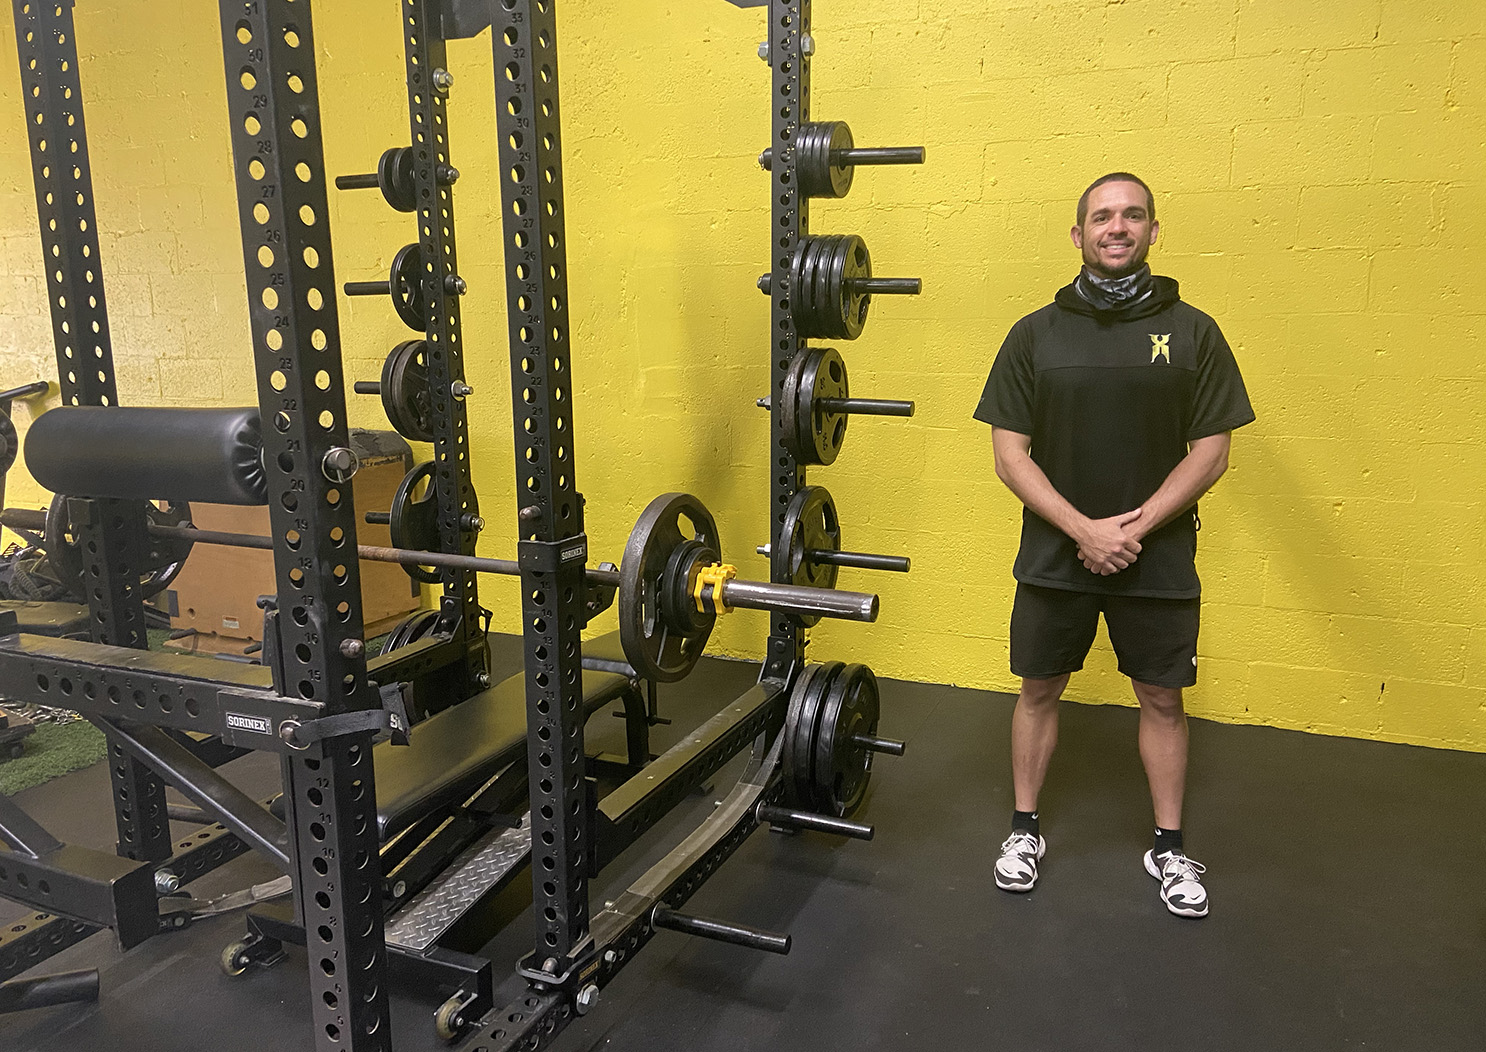 Daniel Marks standing next to gym equipment.